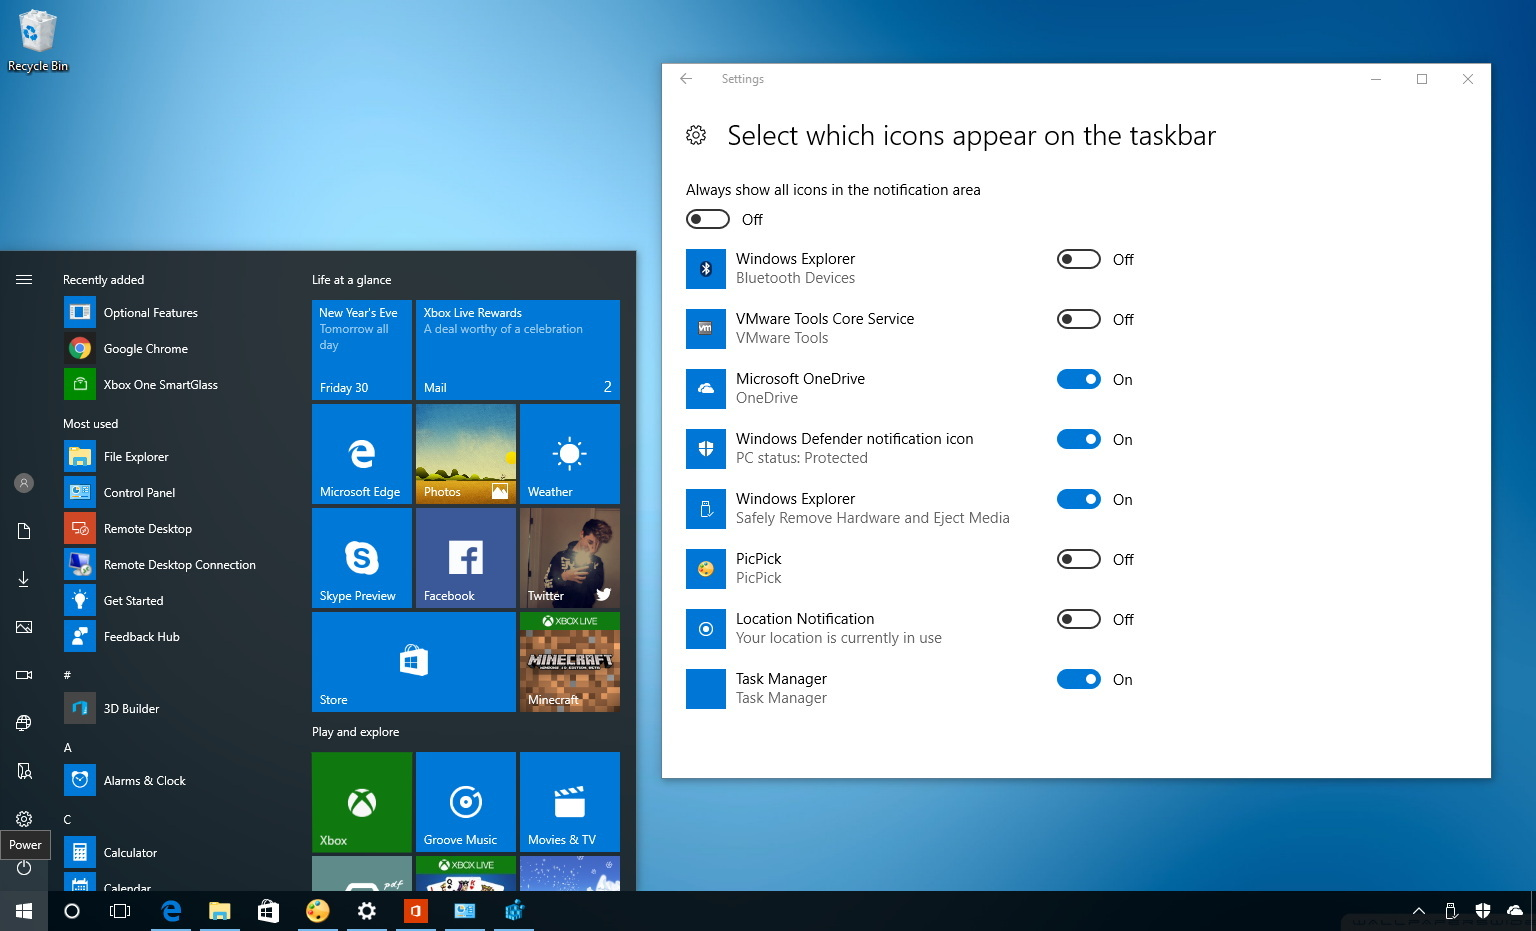 How To Customize Which Icons Appear On The Taskbar On